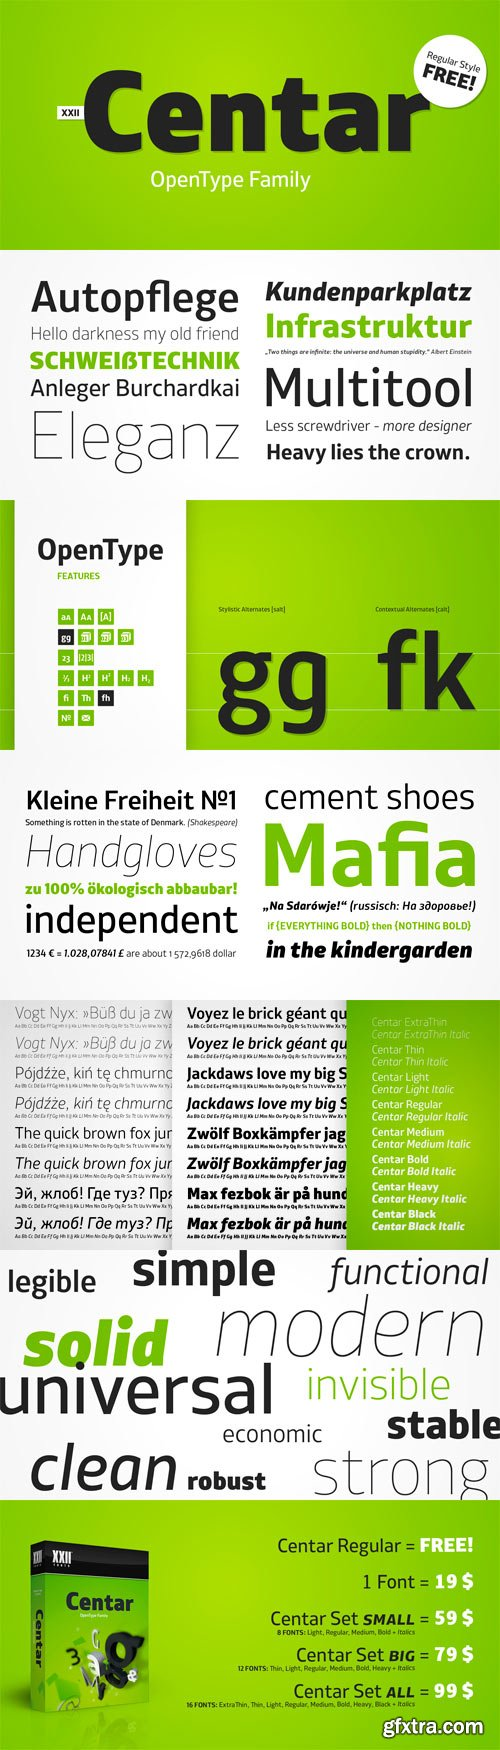 XXII Centar Font Family - 16 Fonts for $99